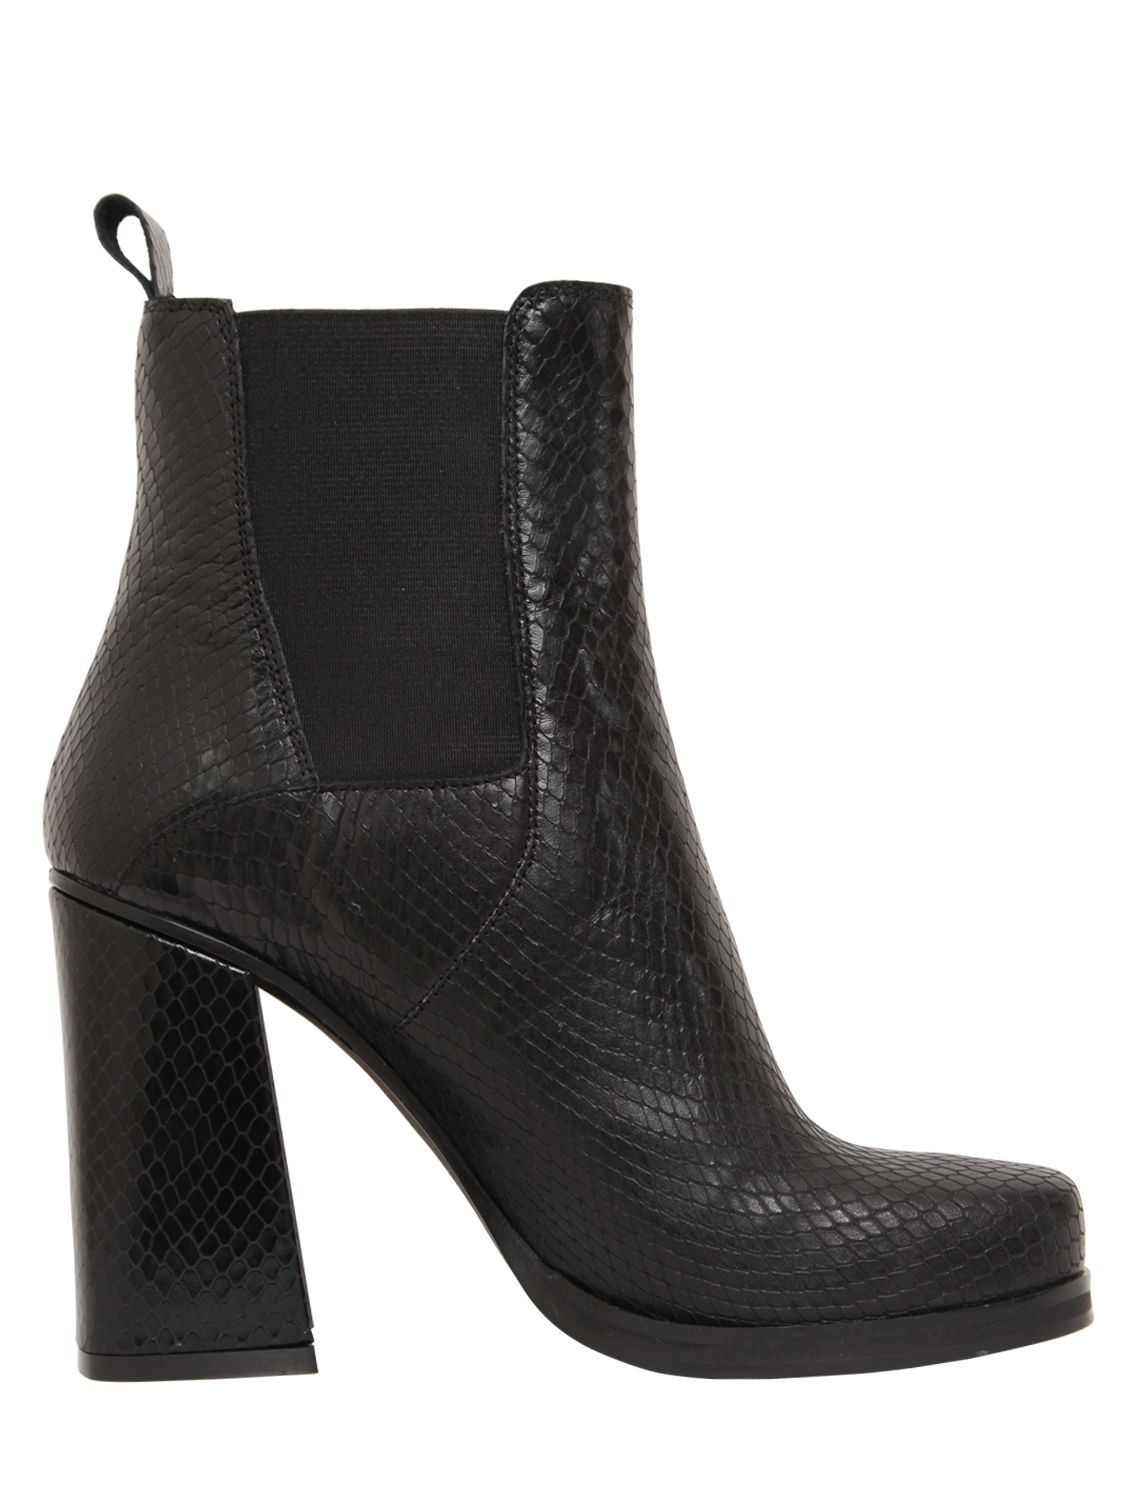 Buy Cheap Geniue Stockist Free Shipping Cheap GIAMPAOLO VIOZZI Ankle Boots calfskin lYBUcT